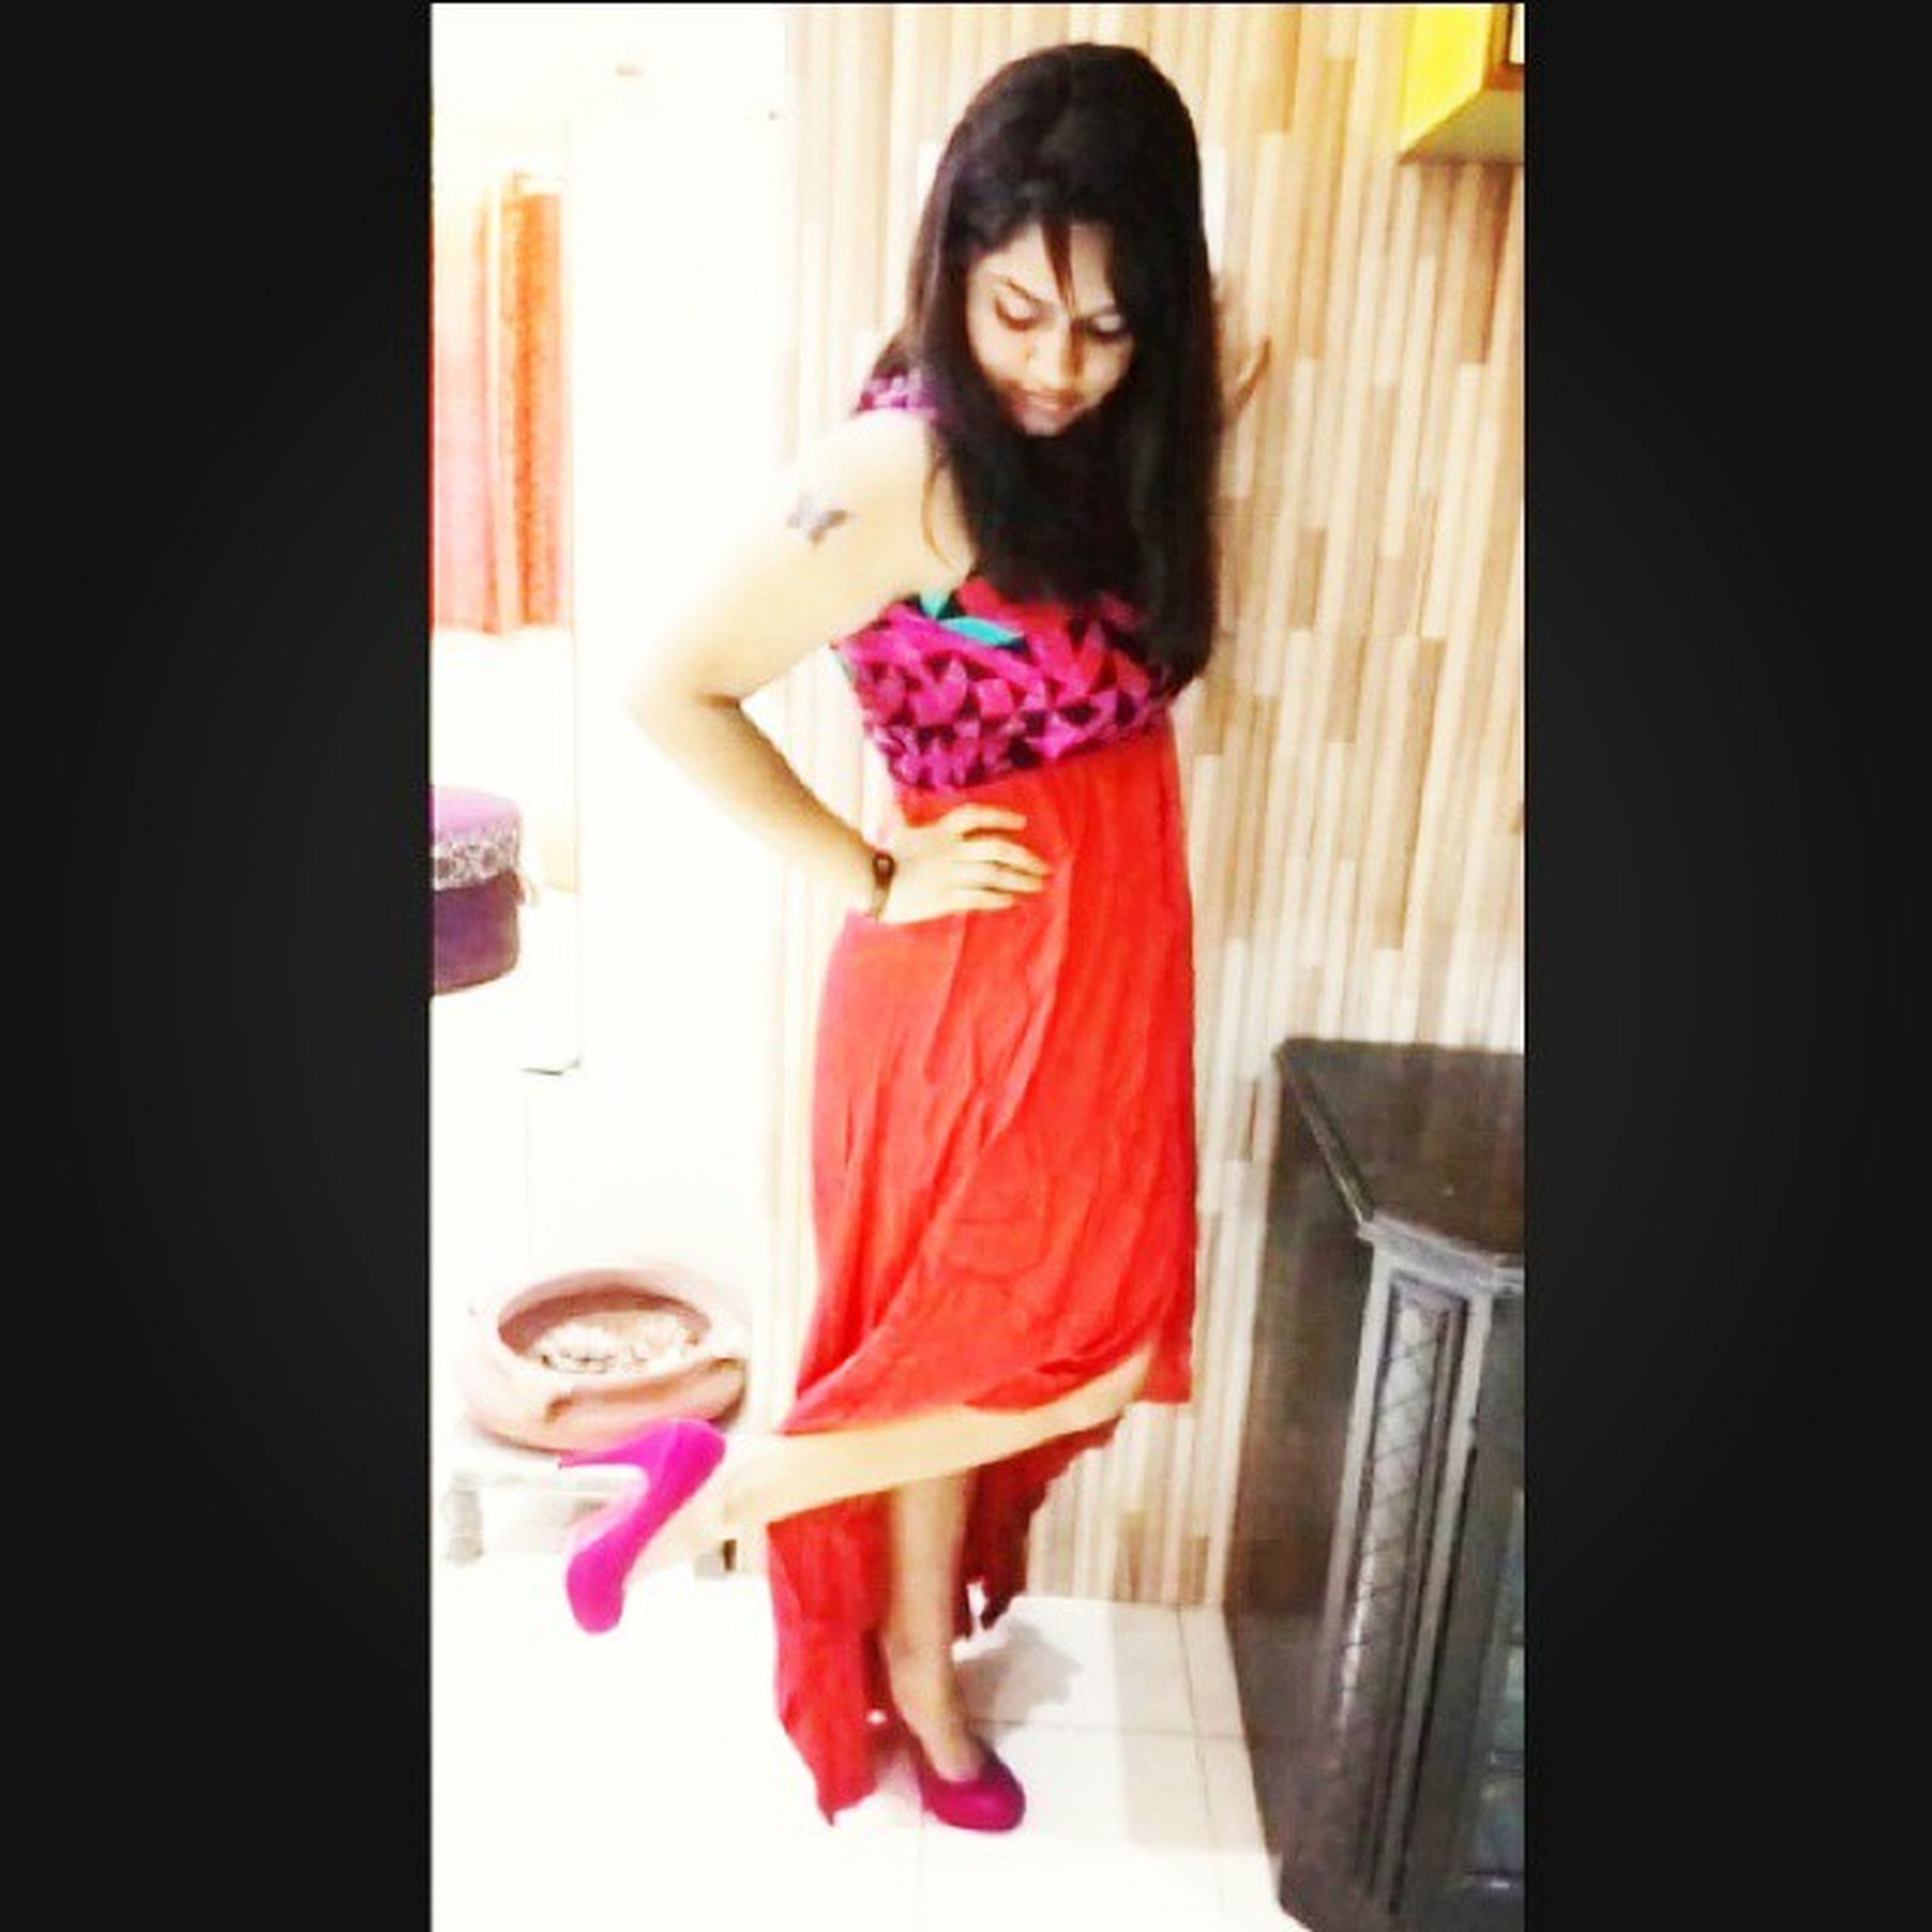 Birthday Outfit Photoshoot!! Mommy's click tho! I love it!! *_* <3 ^_^ ^_- :-* Poser High_Low Red Dress pink heels instalike instaclick instaedit instapic instalove instashare instacool instagood igers doubletap tapthat f4f picoftheday quickfollows